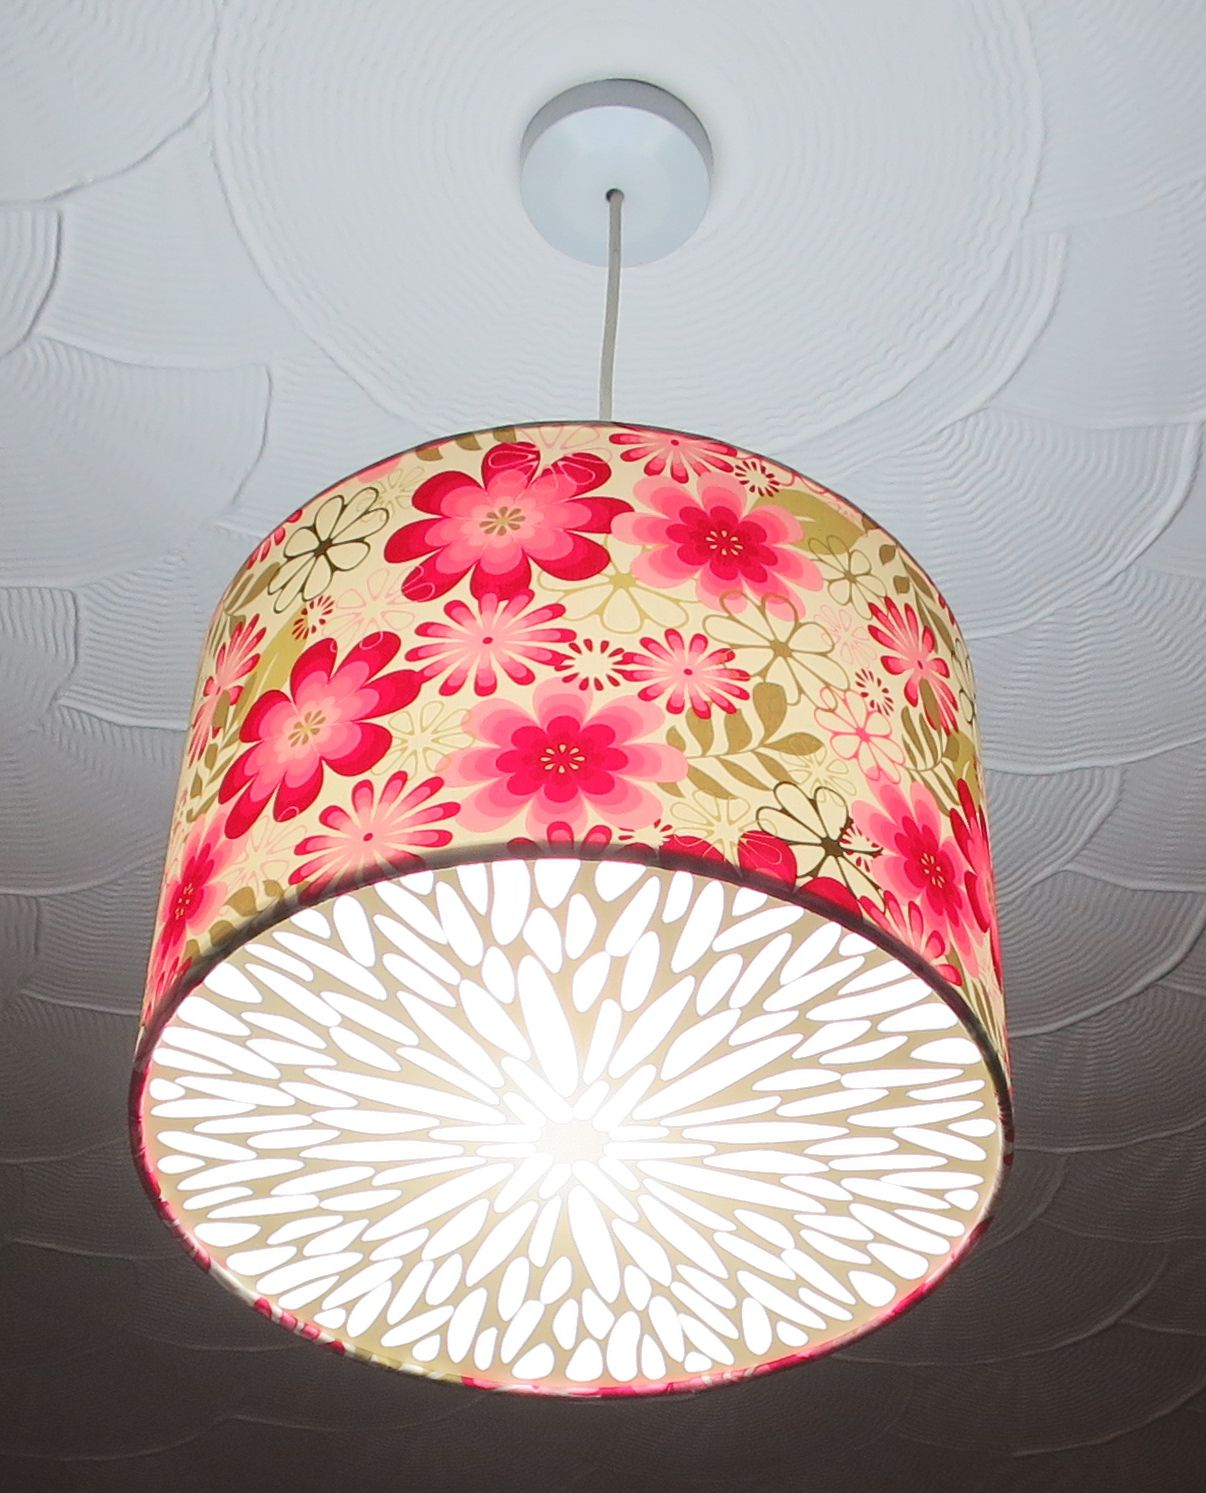 20cm Lampshade Diffuser Floral 2 part set